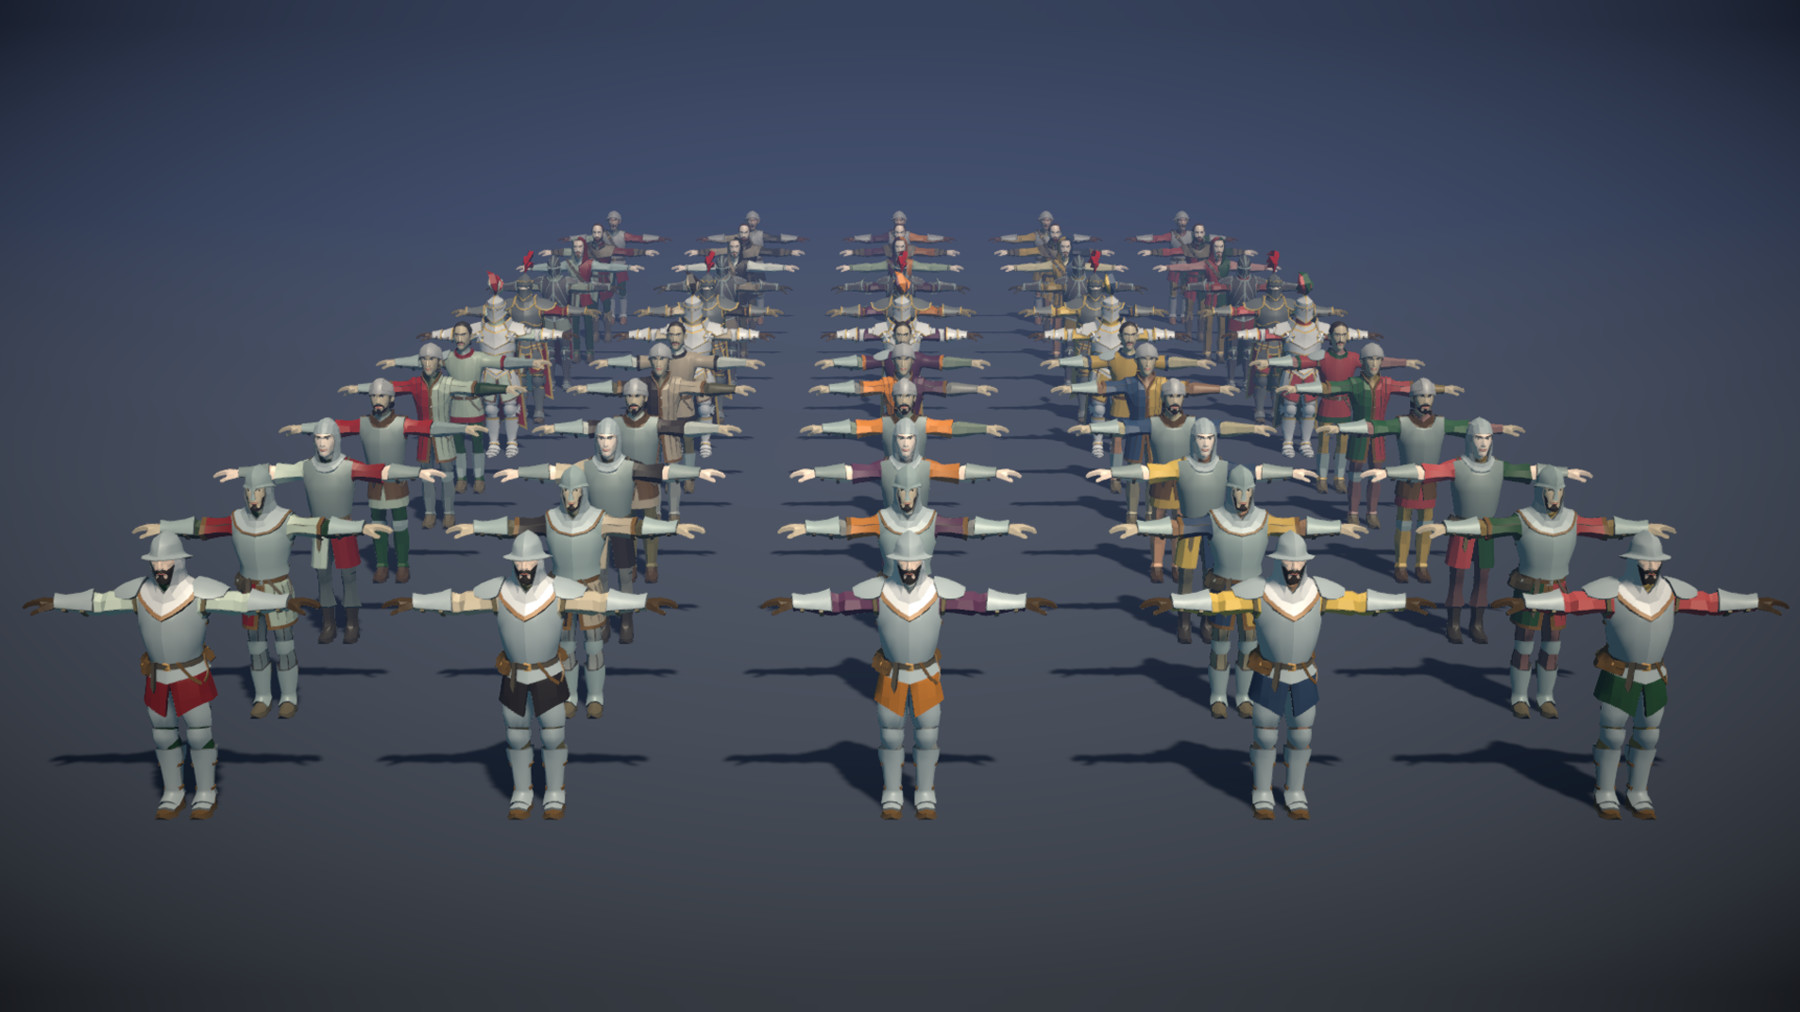 Pt medieval lowpoly characters all